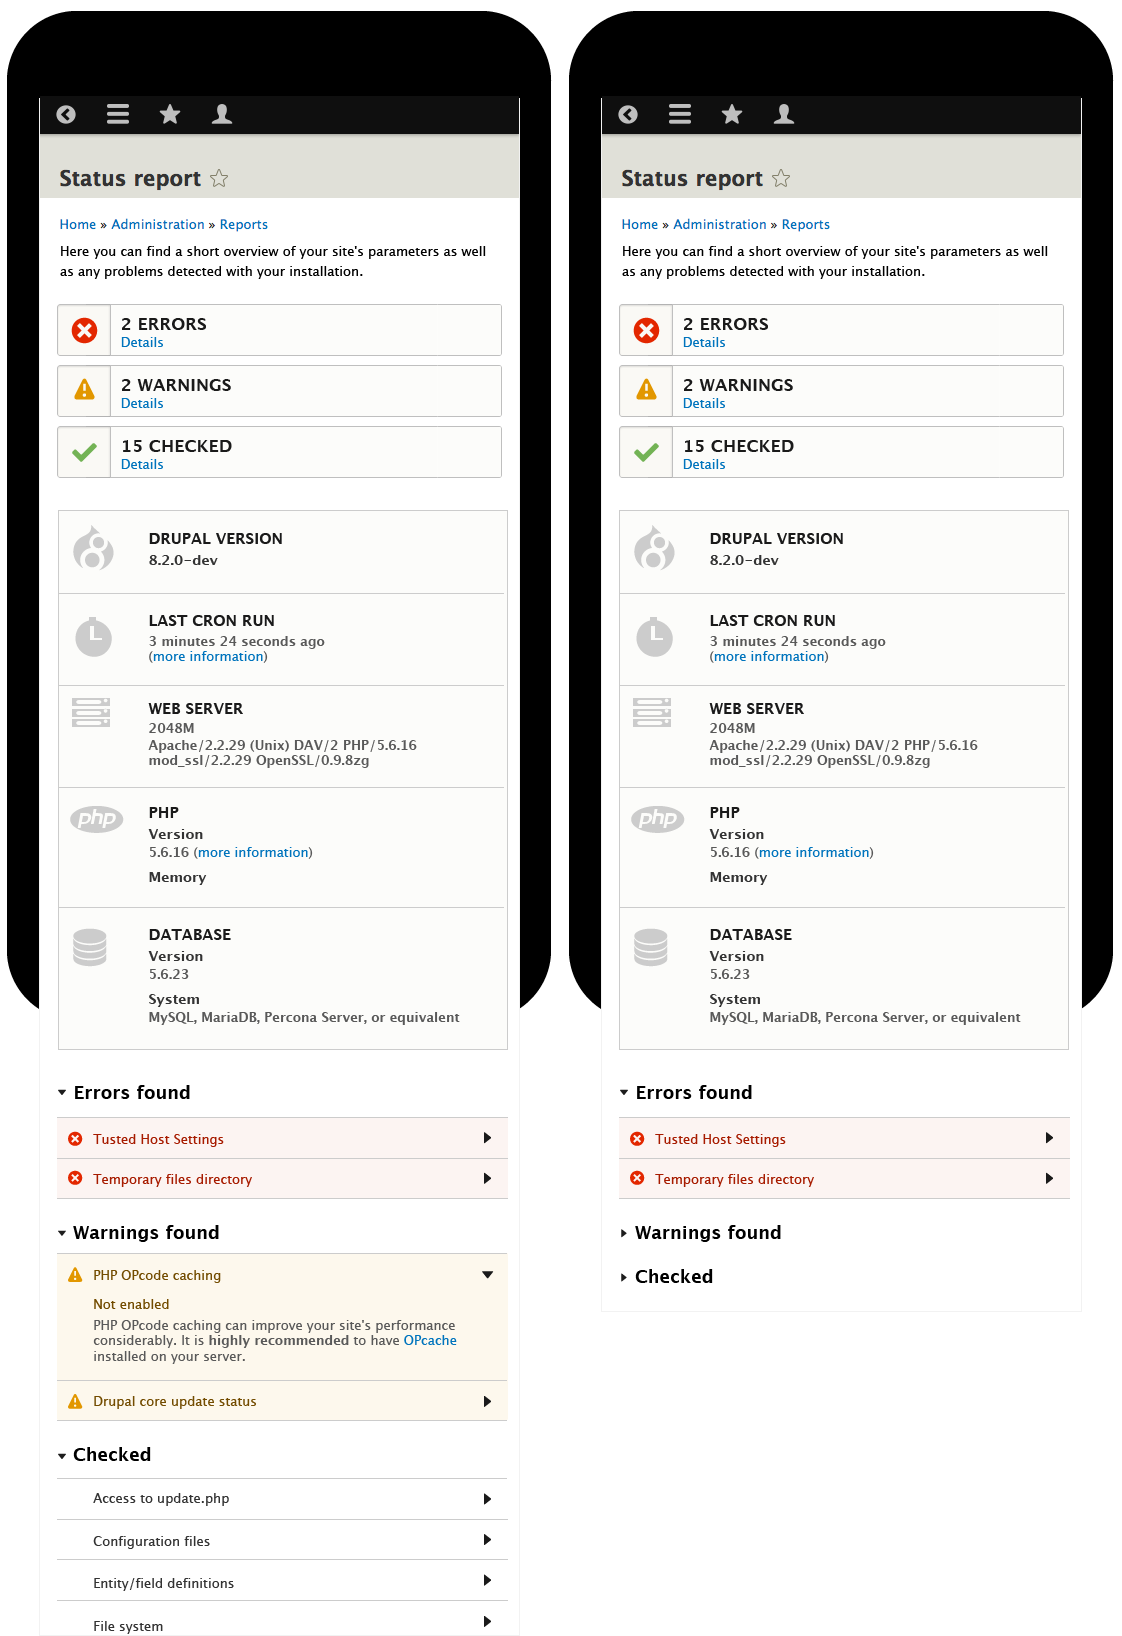 Status page mobile collapsible